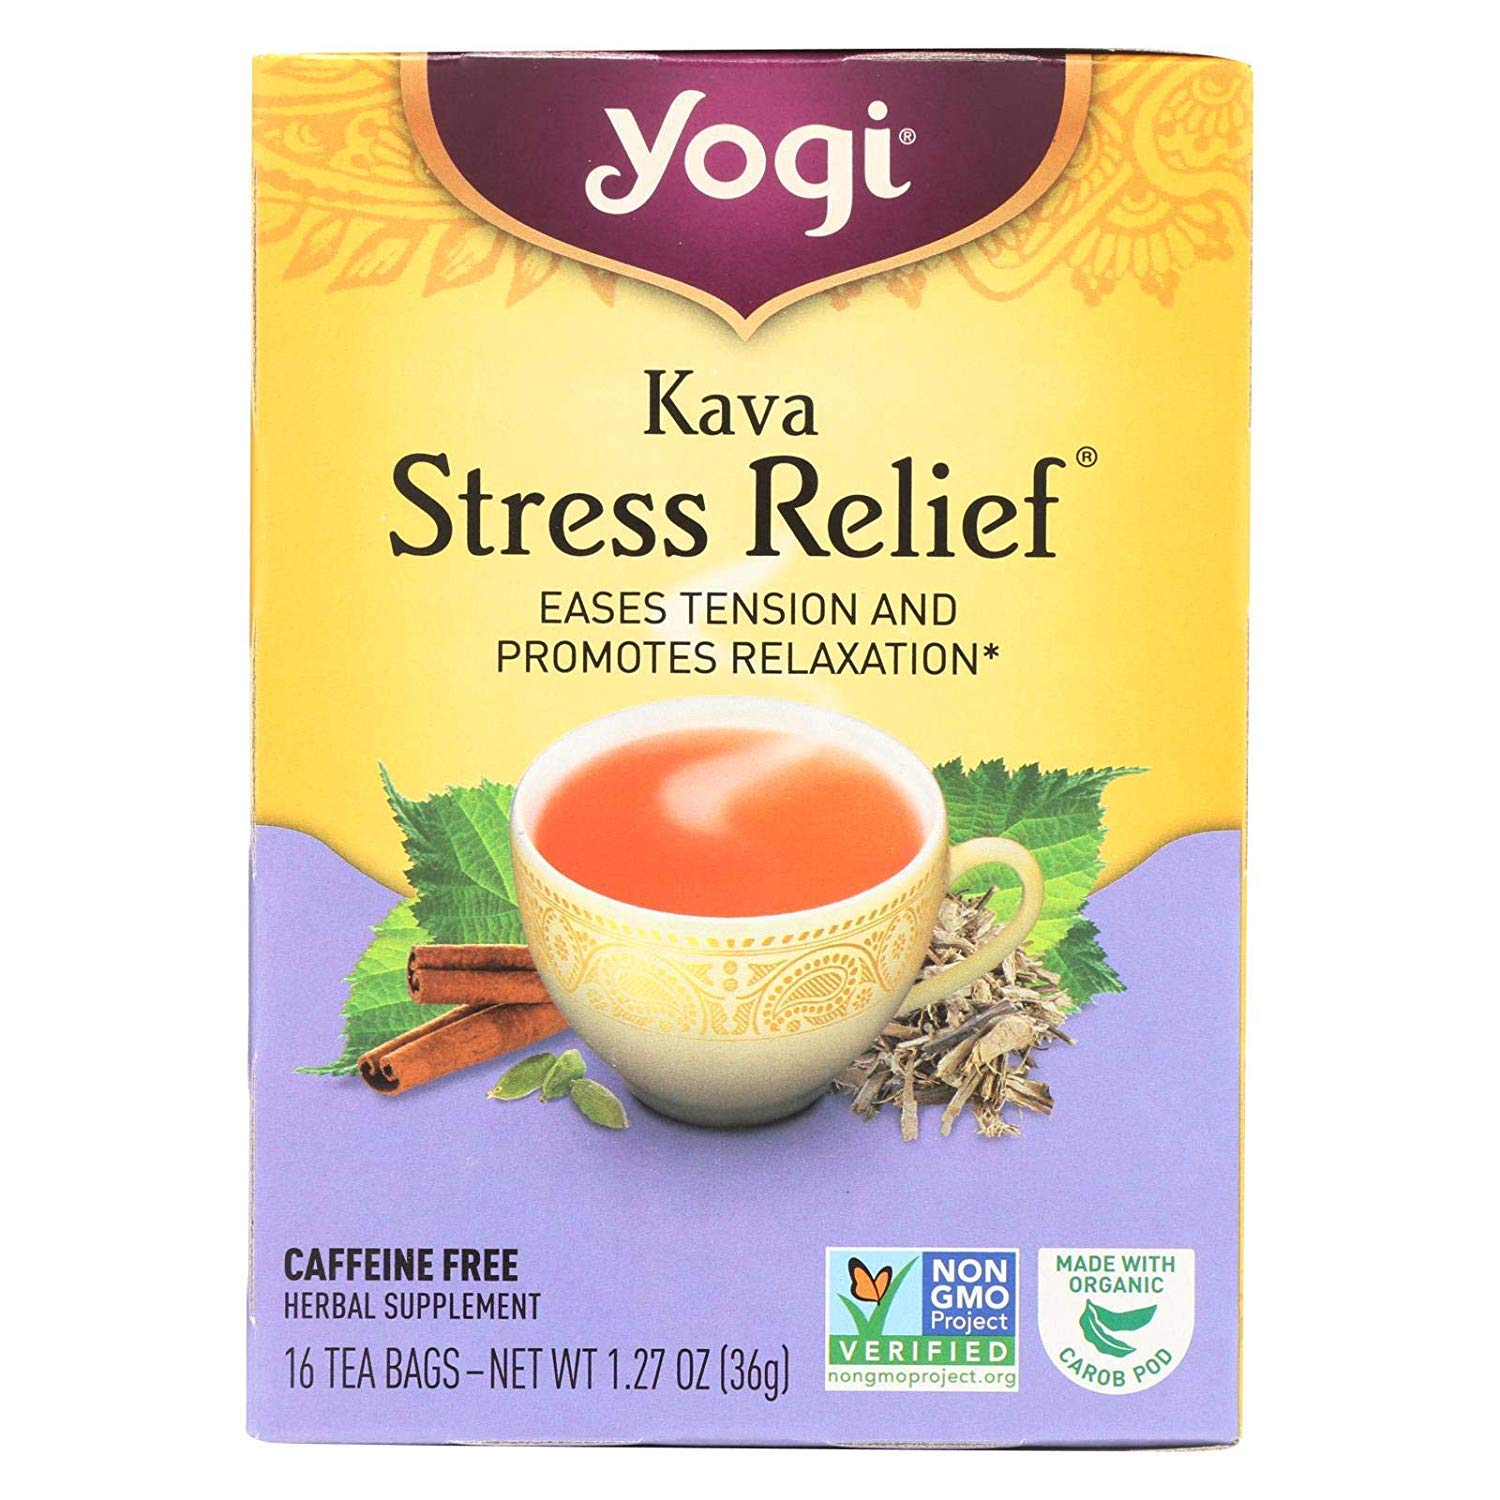 Yogi Tea Kava Stress Relief - Caffeine Free - 16 Tea Bags - 100% Natural - Herbal Tea Supplement